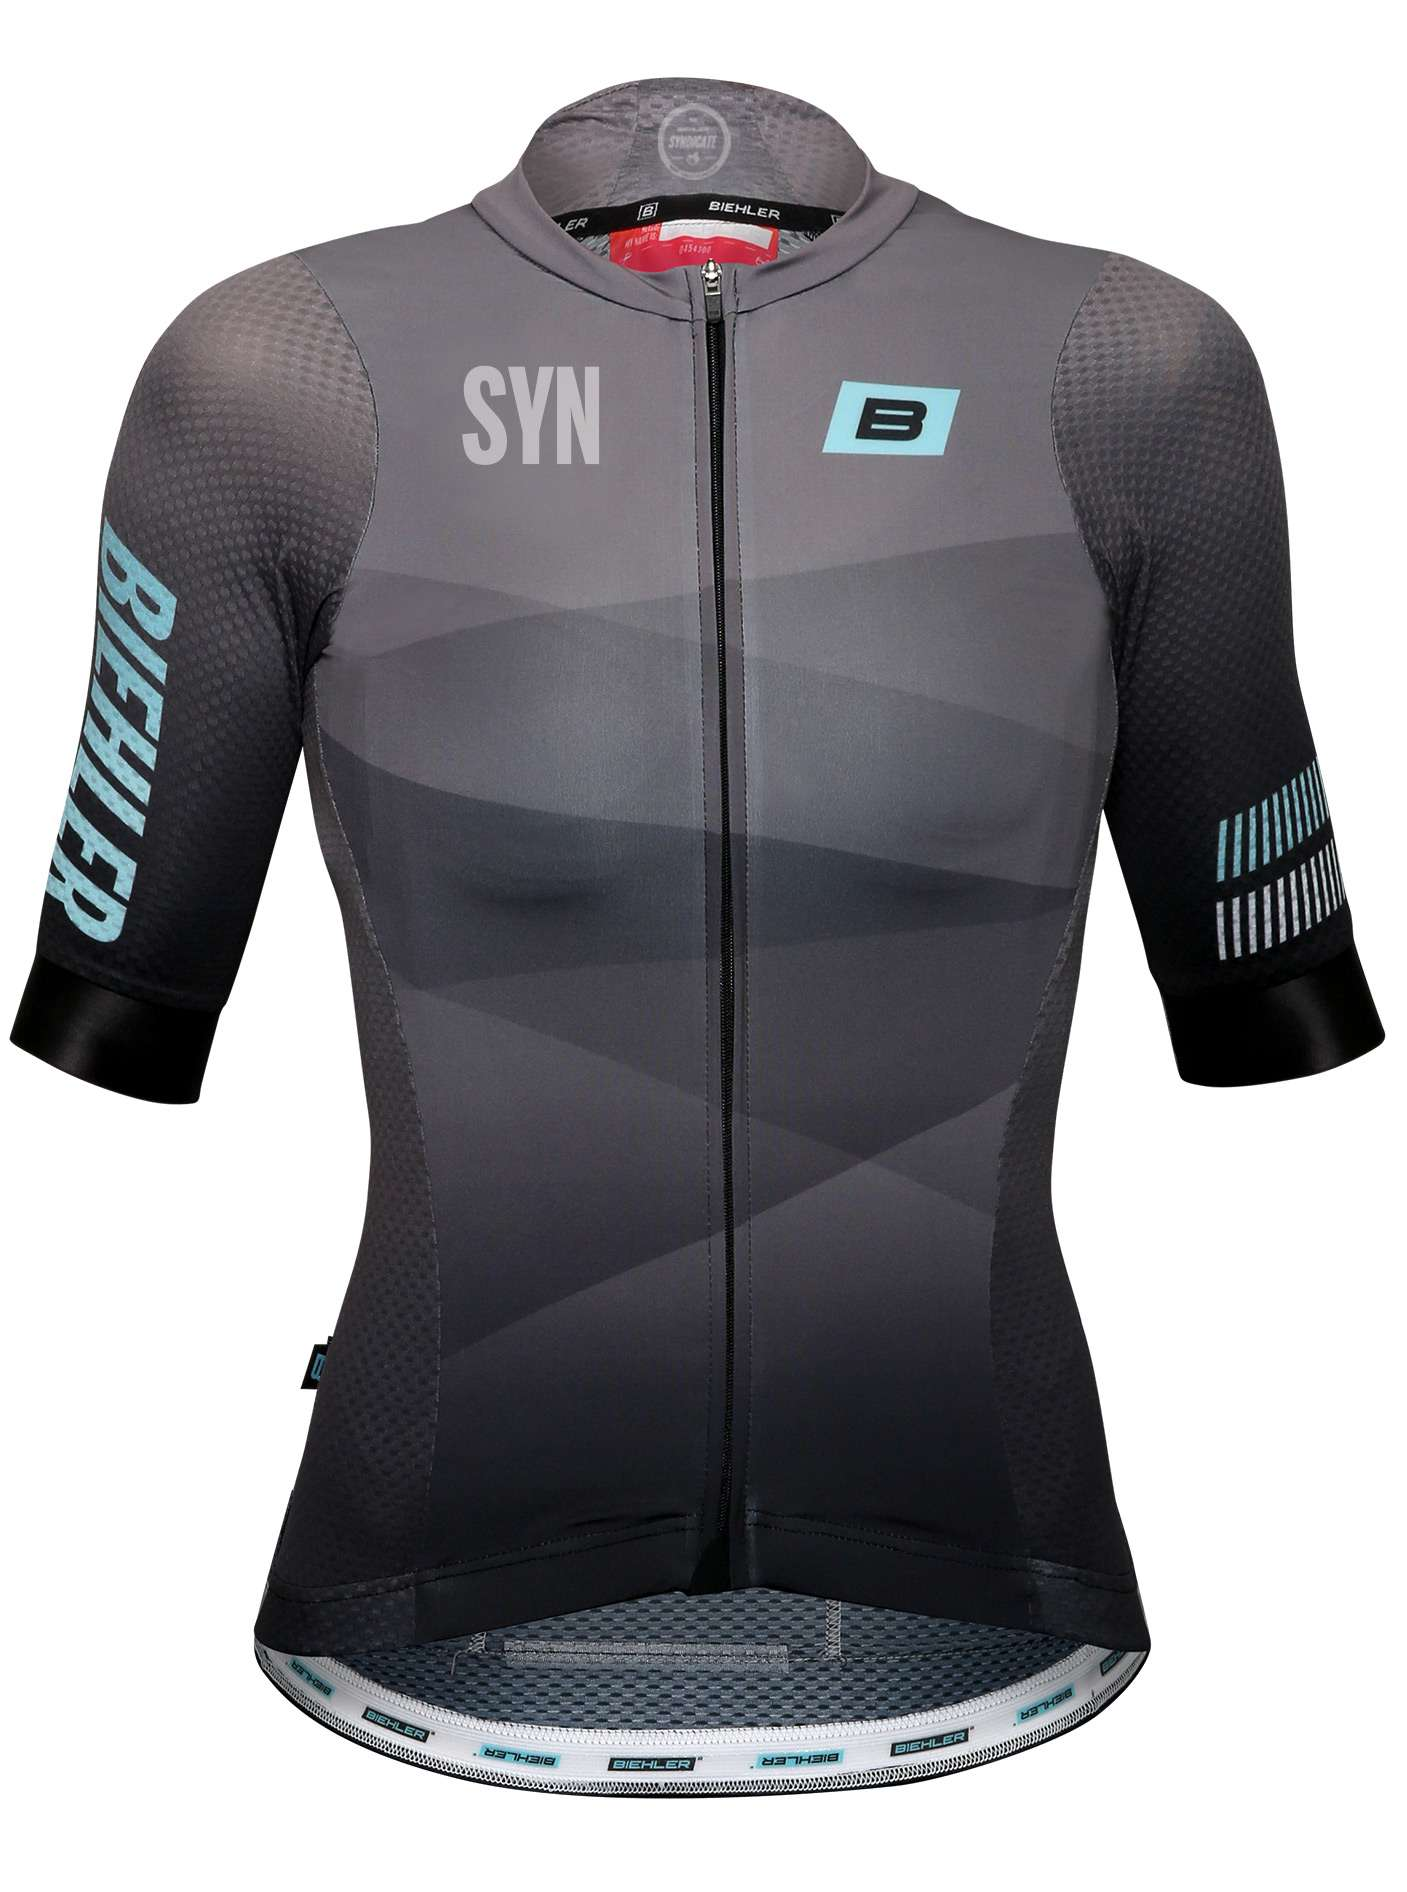 WOMEN PRO TEAM CYCLING JERSEY SYNDICATE  816d9c0c1